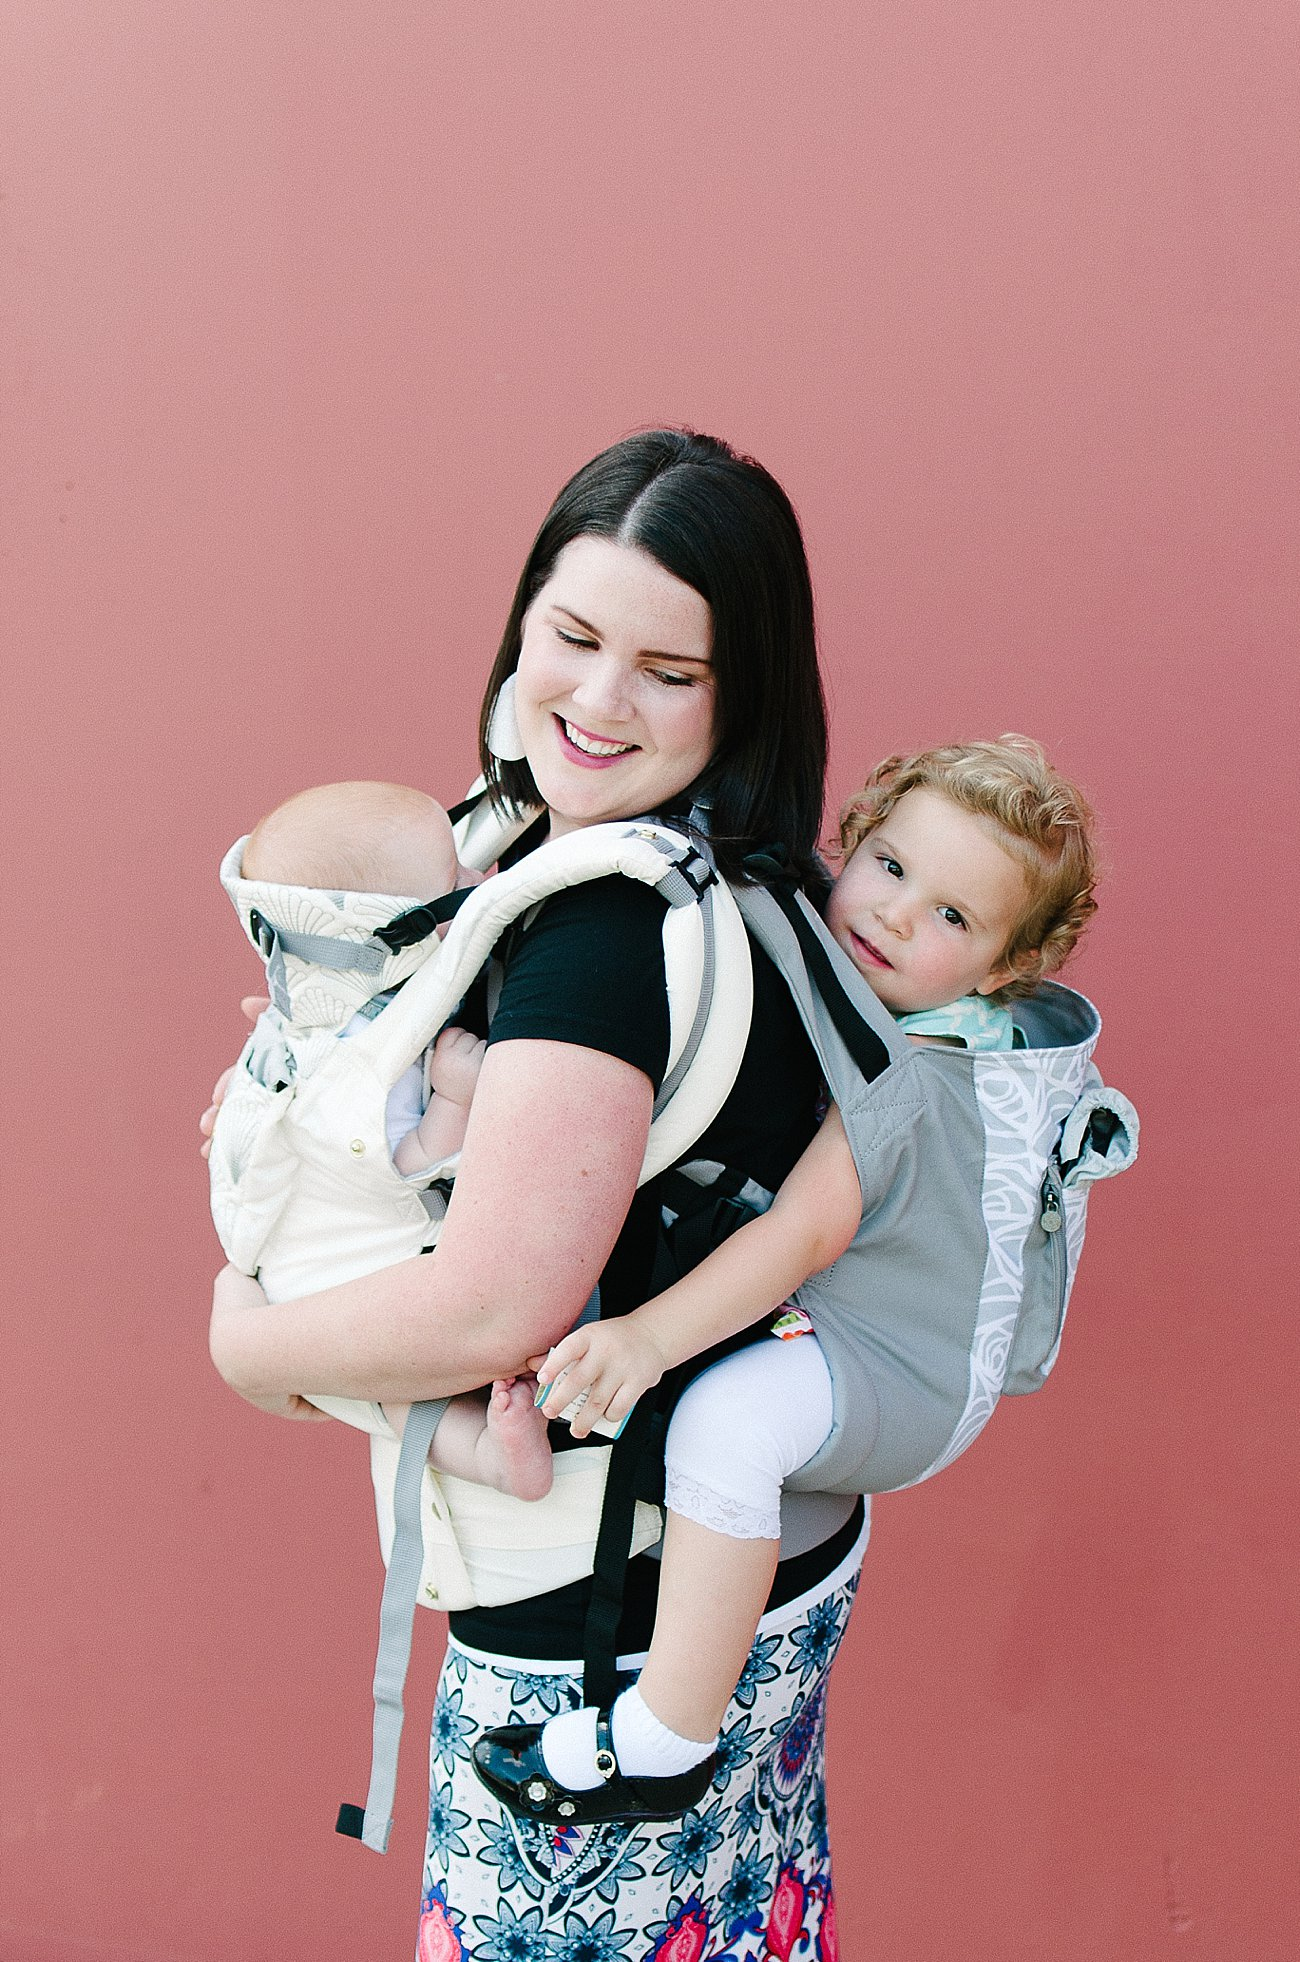 with Lillebaby Complete & CarryOn Baby Carriers #babywearing #tandemwearing #toddlerwearing (2)